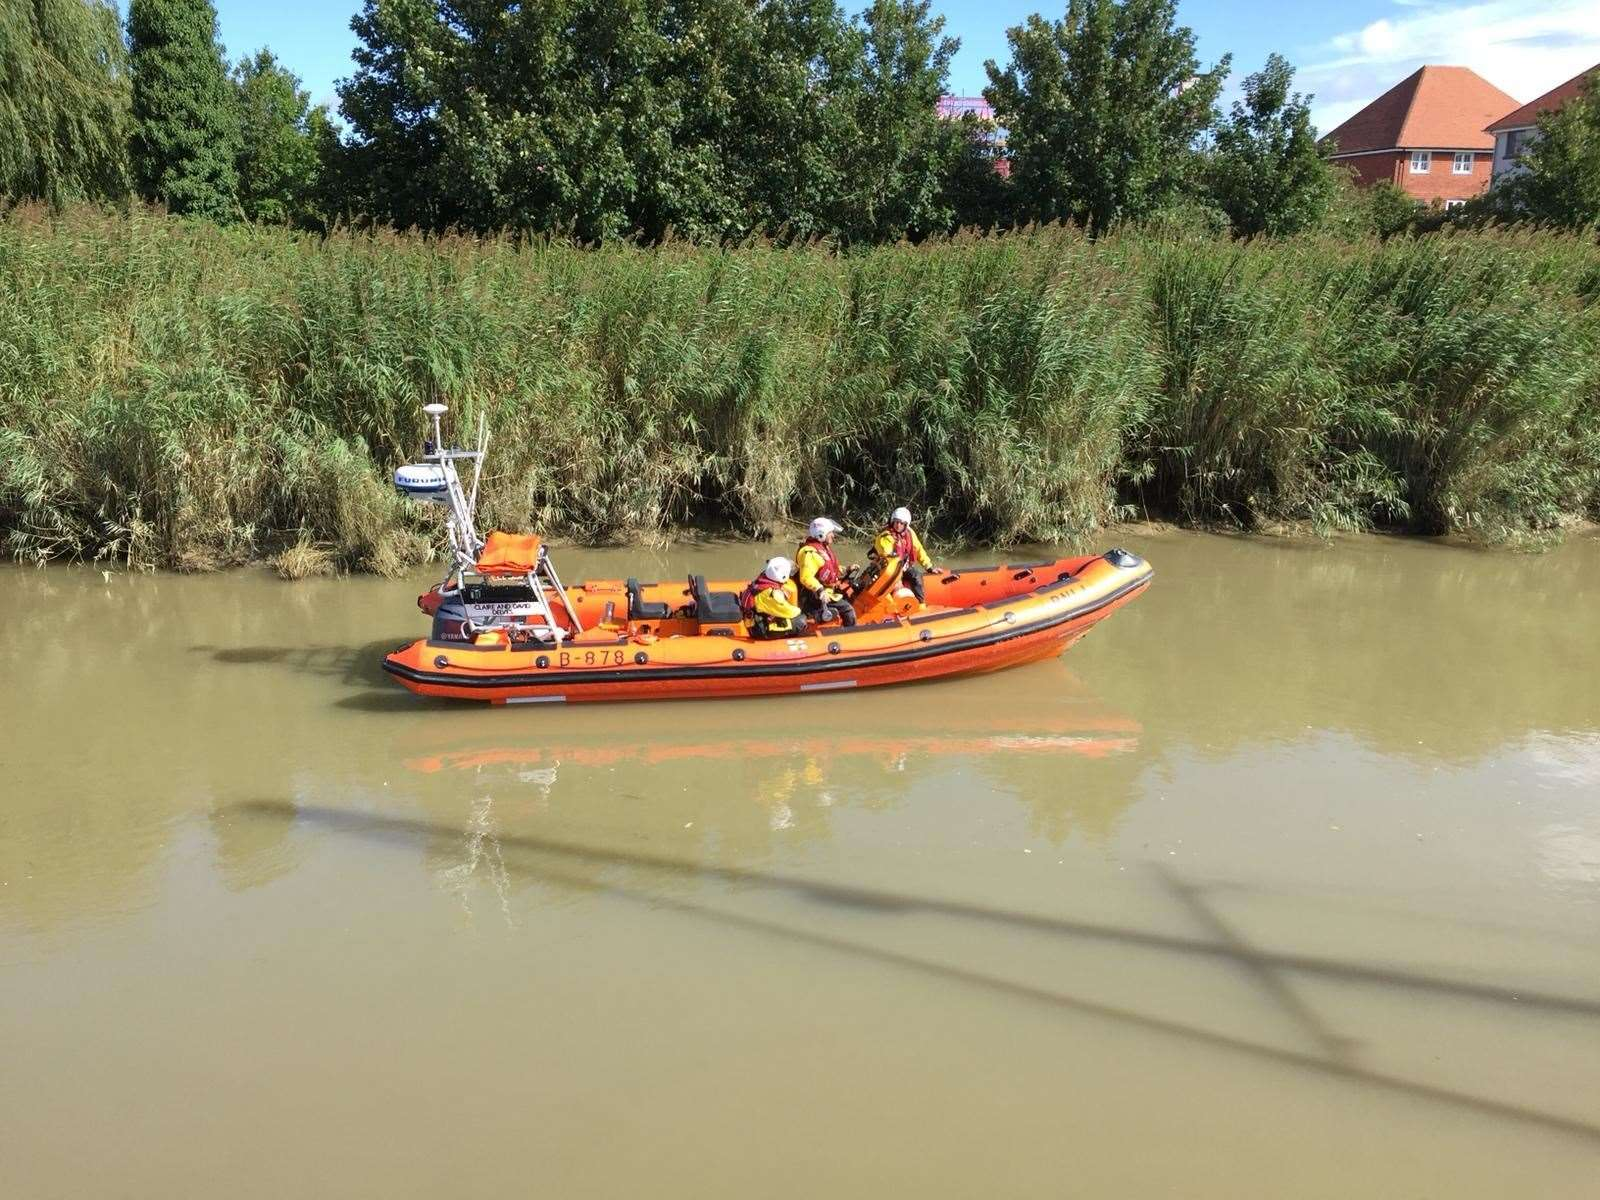 Search teams out on the river looking for Lucas Dobson (15388169)